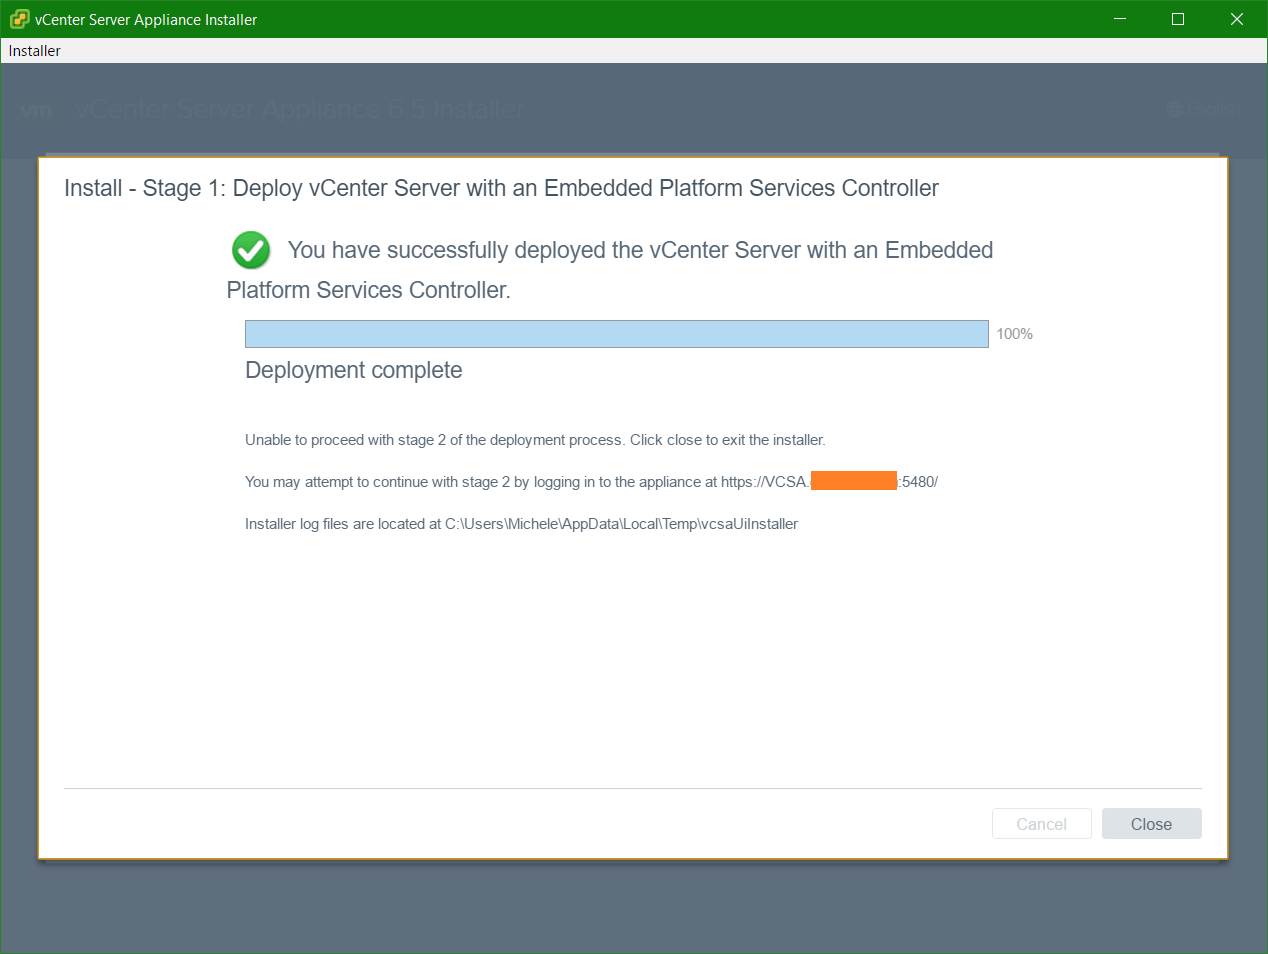 domalab.com VCSA install stage 1 complete